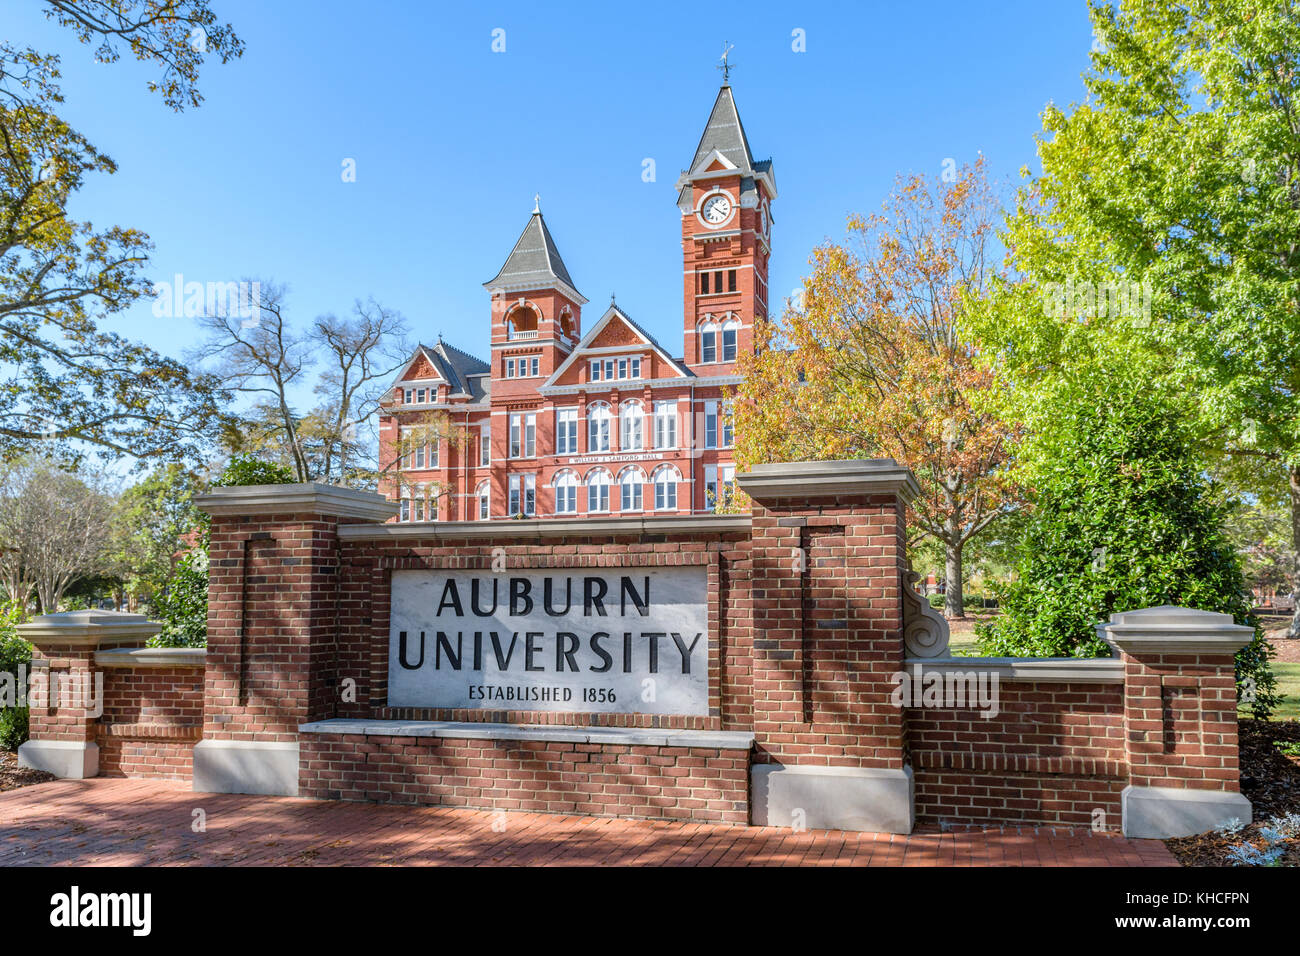 Auburn University, William J Samford Hall, administration building on the college campus with it's clock tower - Stock Image